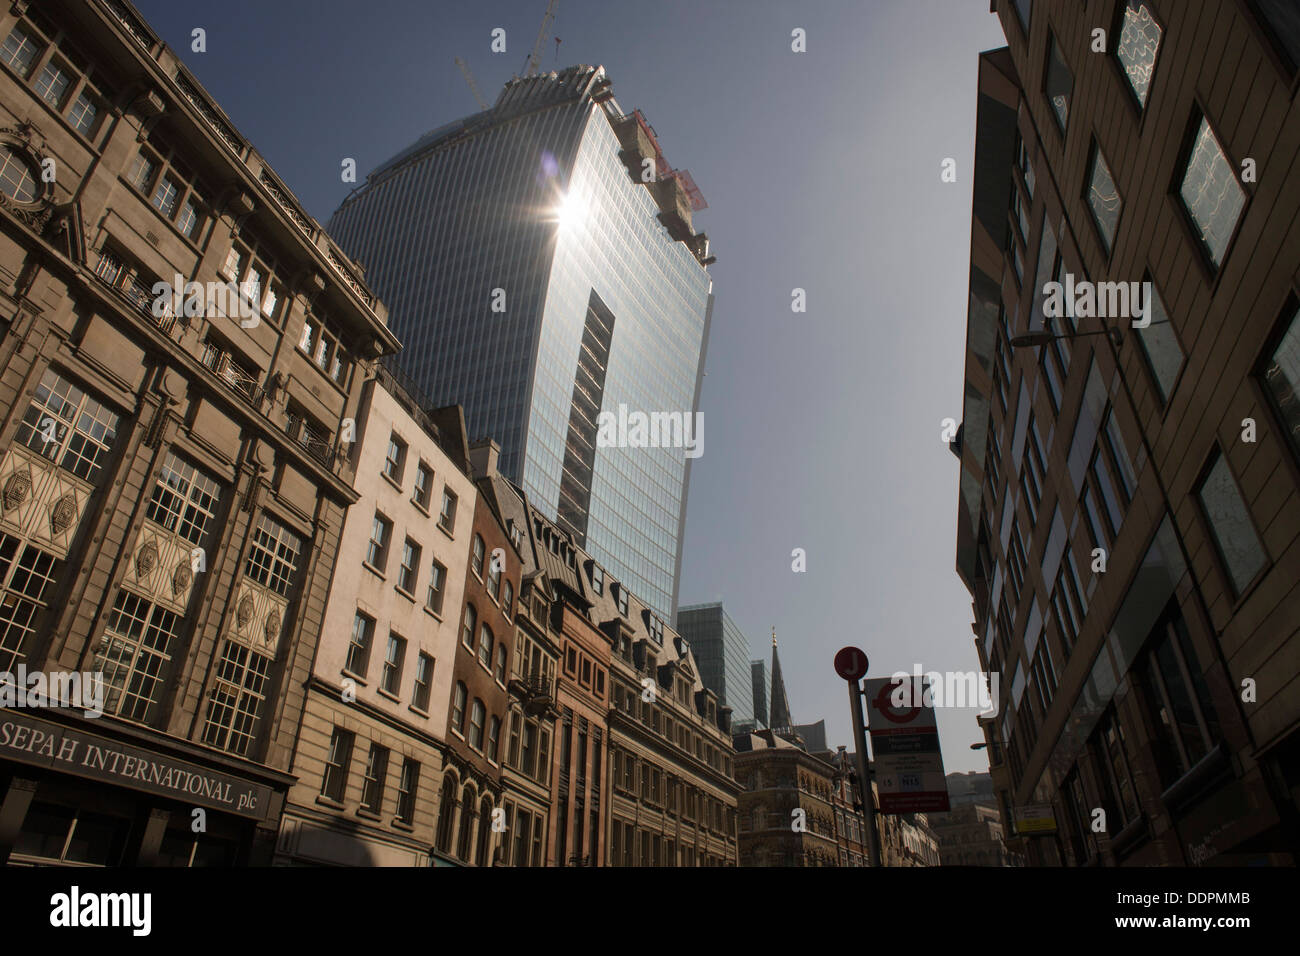 The intensive glare of solar rays reflected off the concave plate glass windows of one of the capital's newest skyscrapers known as the Walkie Talkie. The hotspot has surprised developers and passers-by below and which has already melted a parked car in Eastcheap Street. Thermometers placed in the street reached 144F (62 Celsius) and city workers poured out of their offices at lunchtime to experience the intense light and heat. - Stock Image